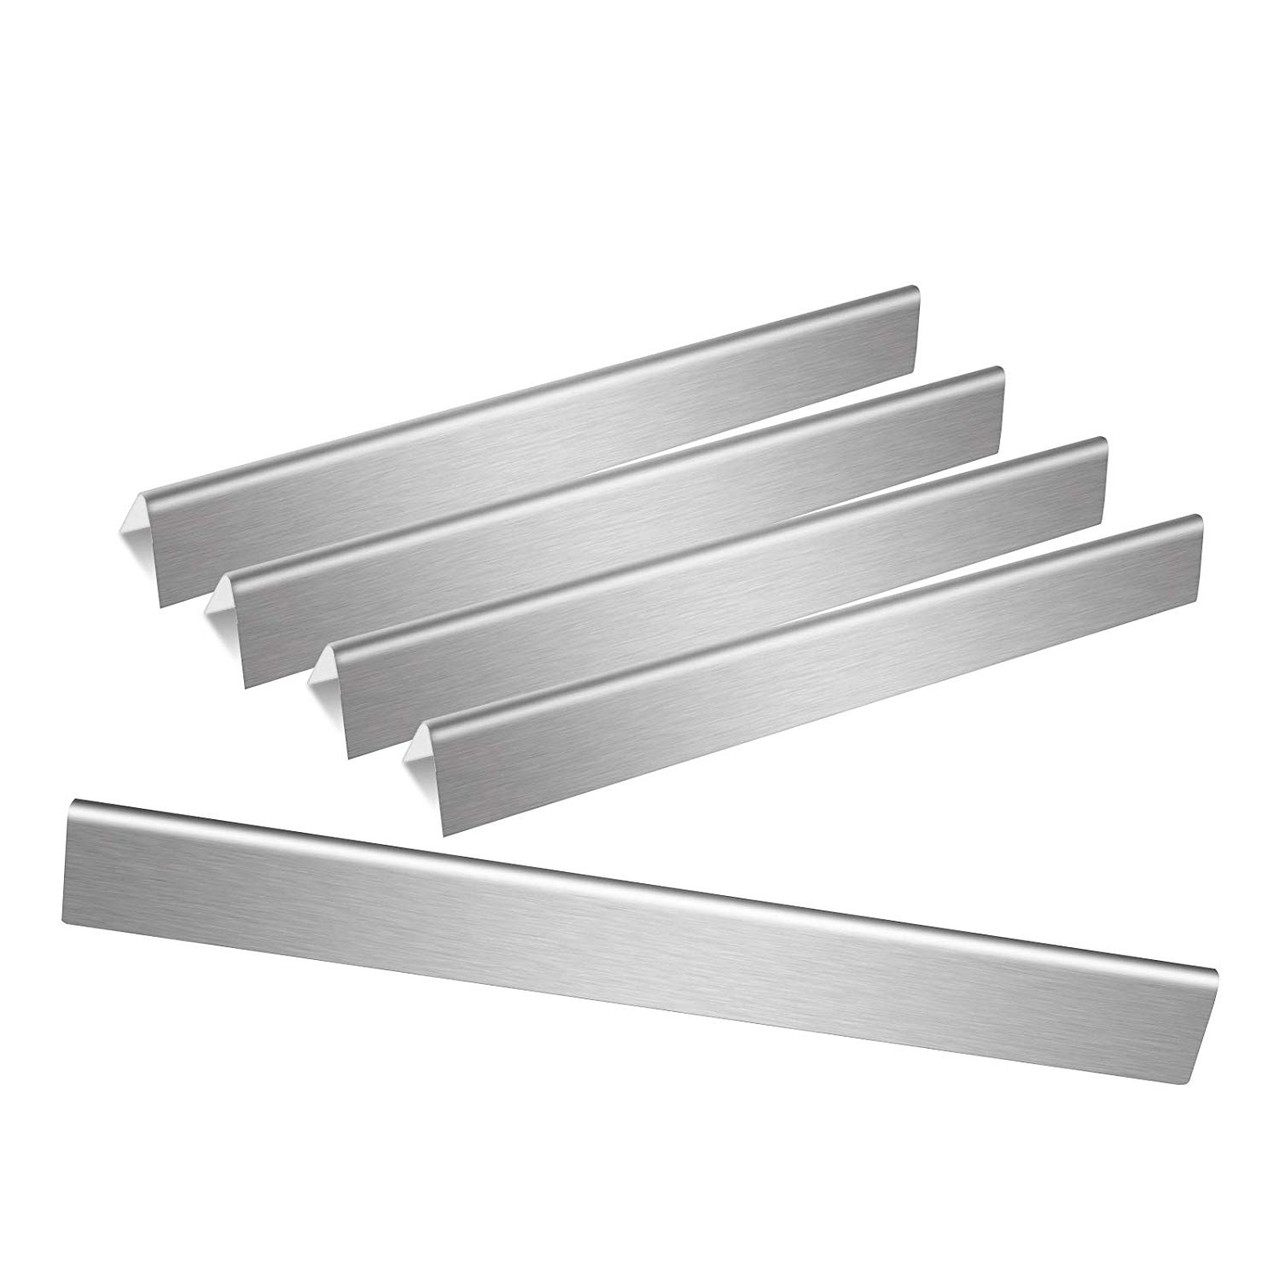 Avenger 7536 Universal Stainless Steel Flavorizer Bars 22 6 Inches Heat Plates Tent Shield Replacement For Weber Spirit 300 Series E310 E320 Genesis Silver B C Gold Set Of 5